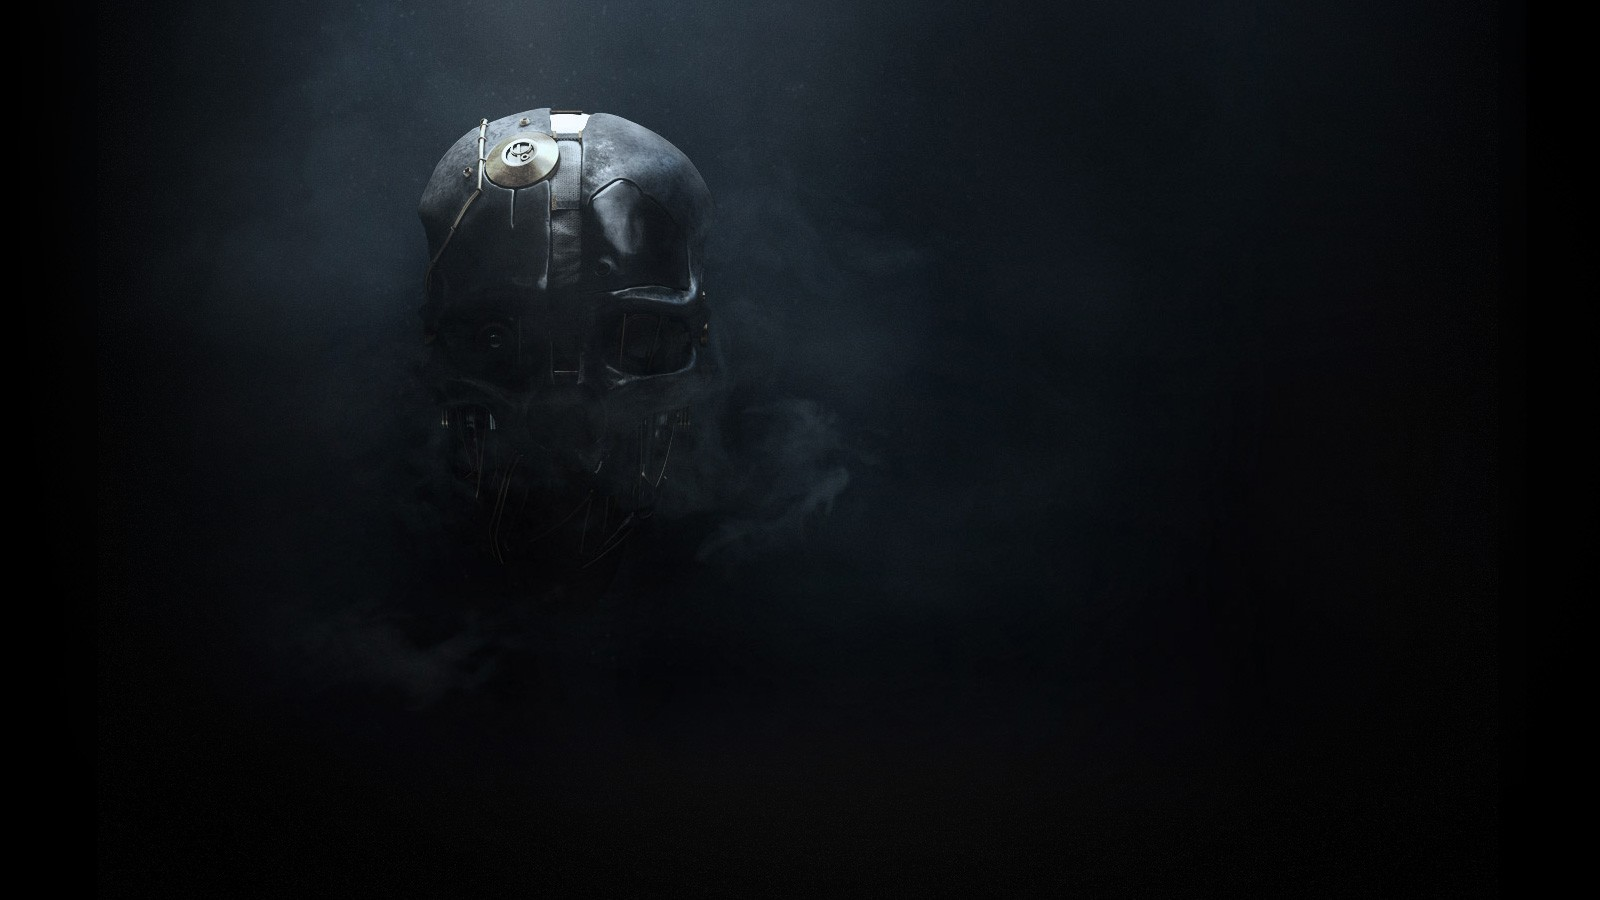 Video Games Wallpaper 1600x900 Video Games Dark PC Dishonored Pc 1600x900